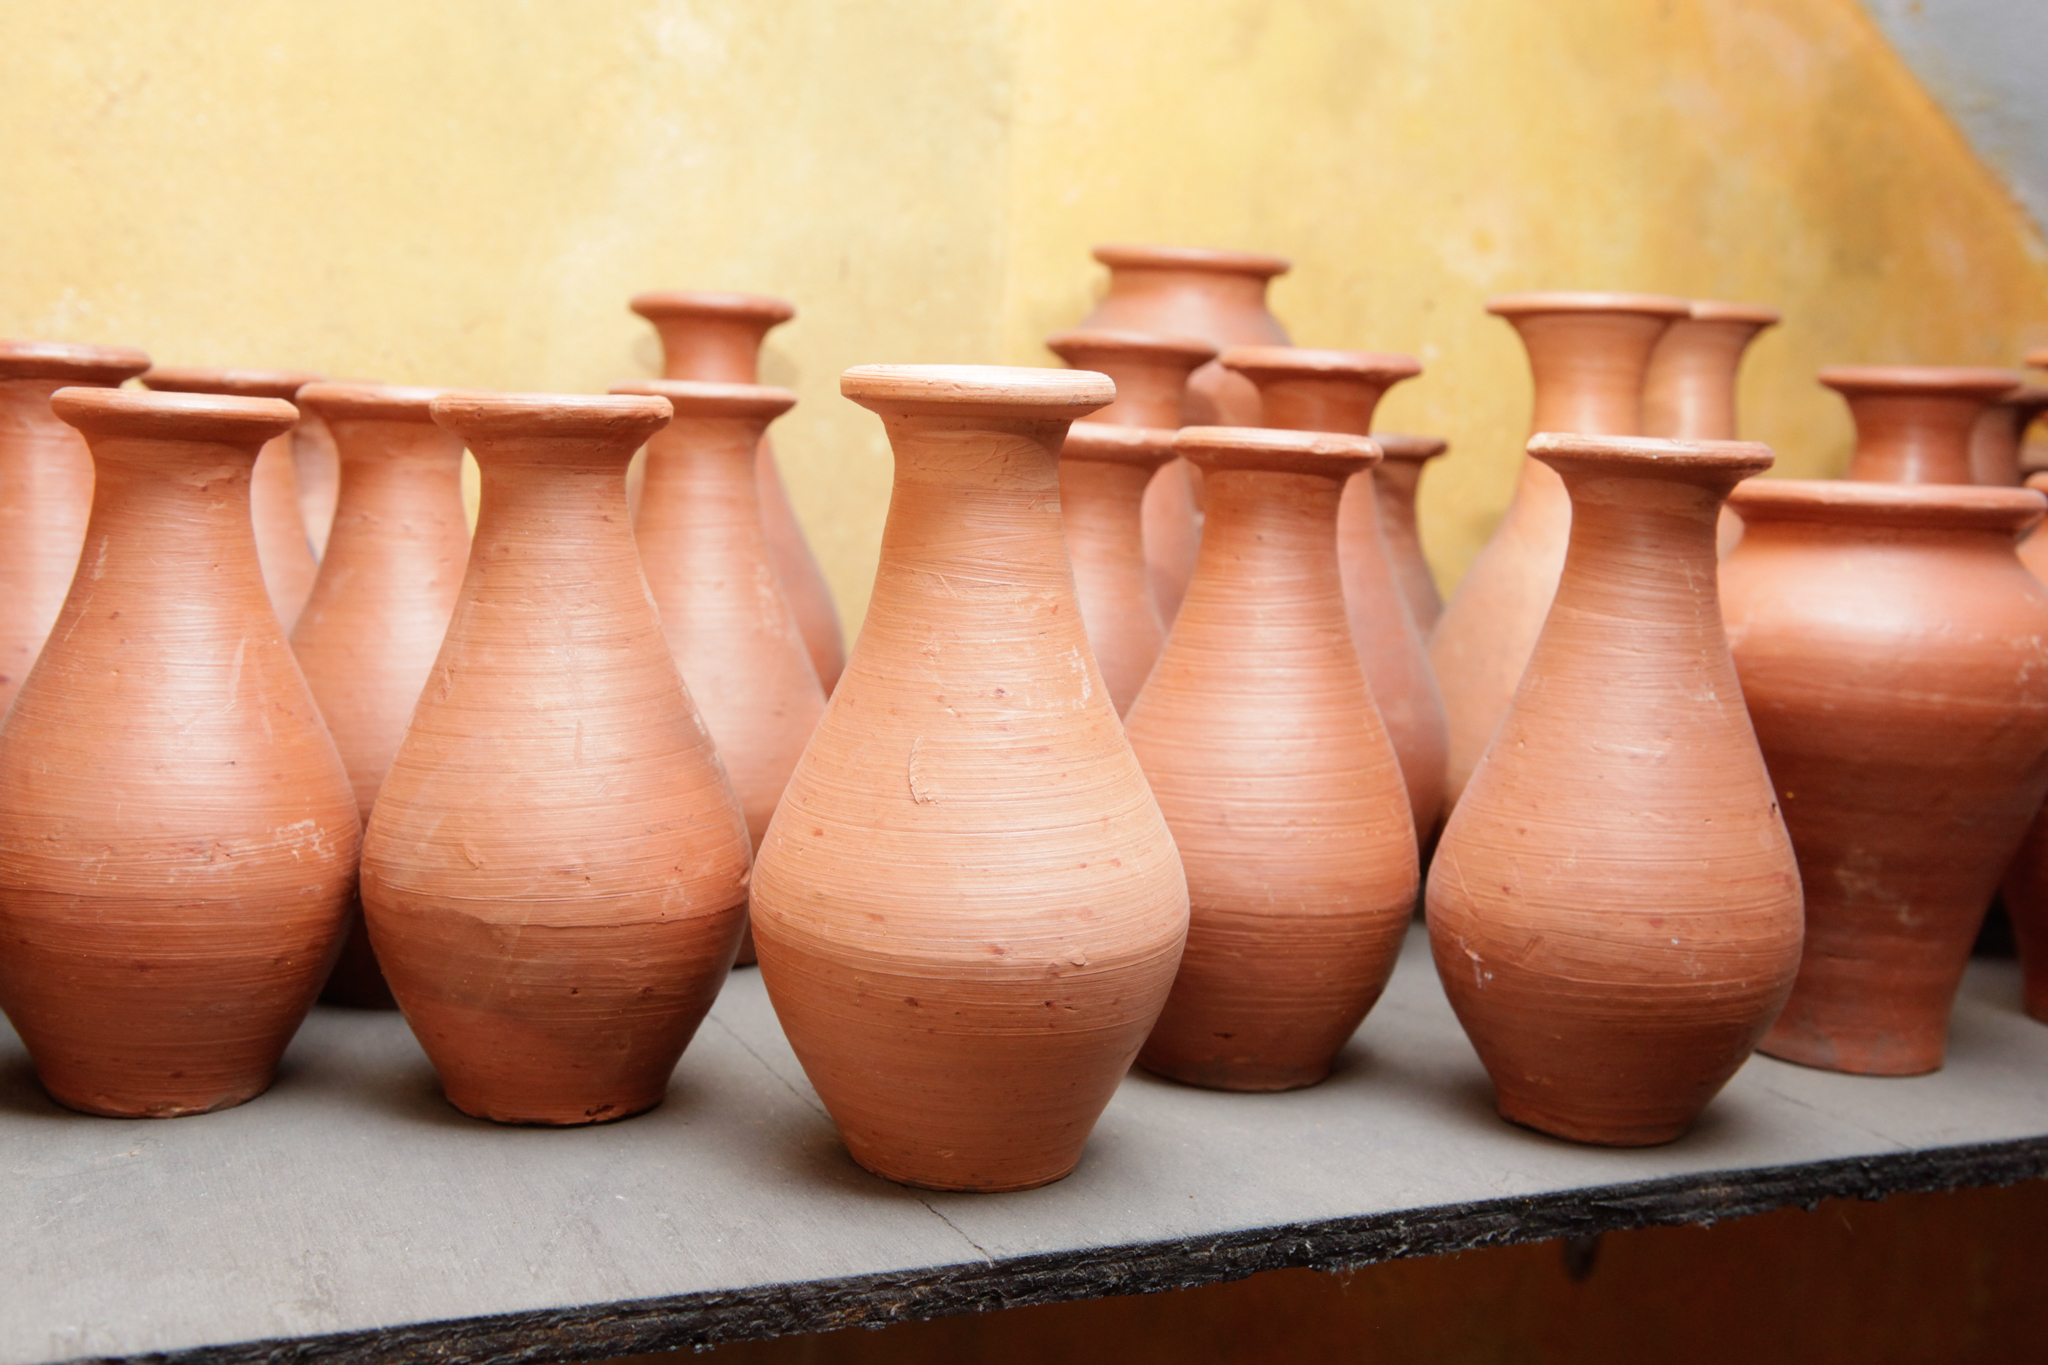 Pottery is a form of craft in Sri Lanka